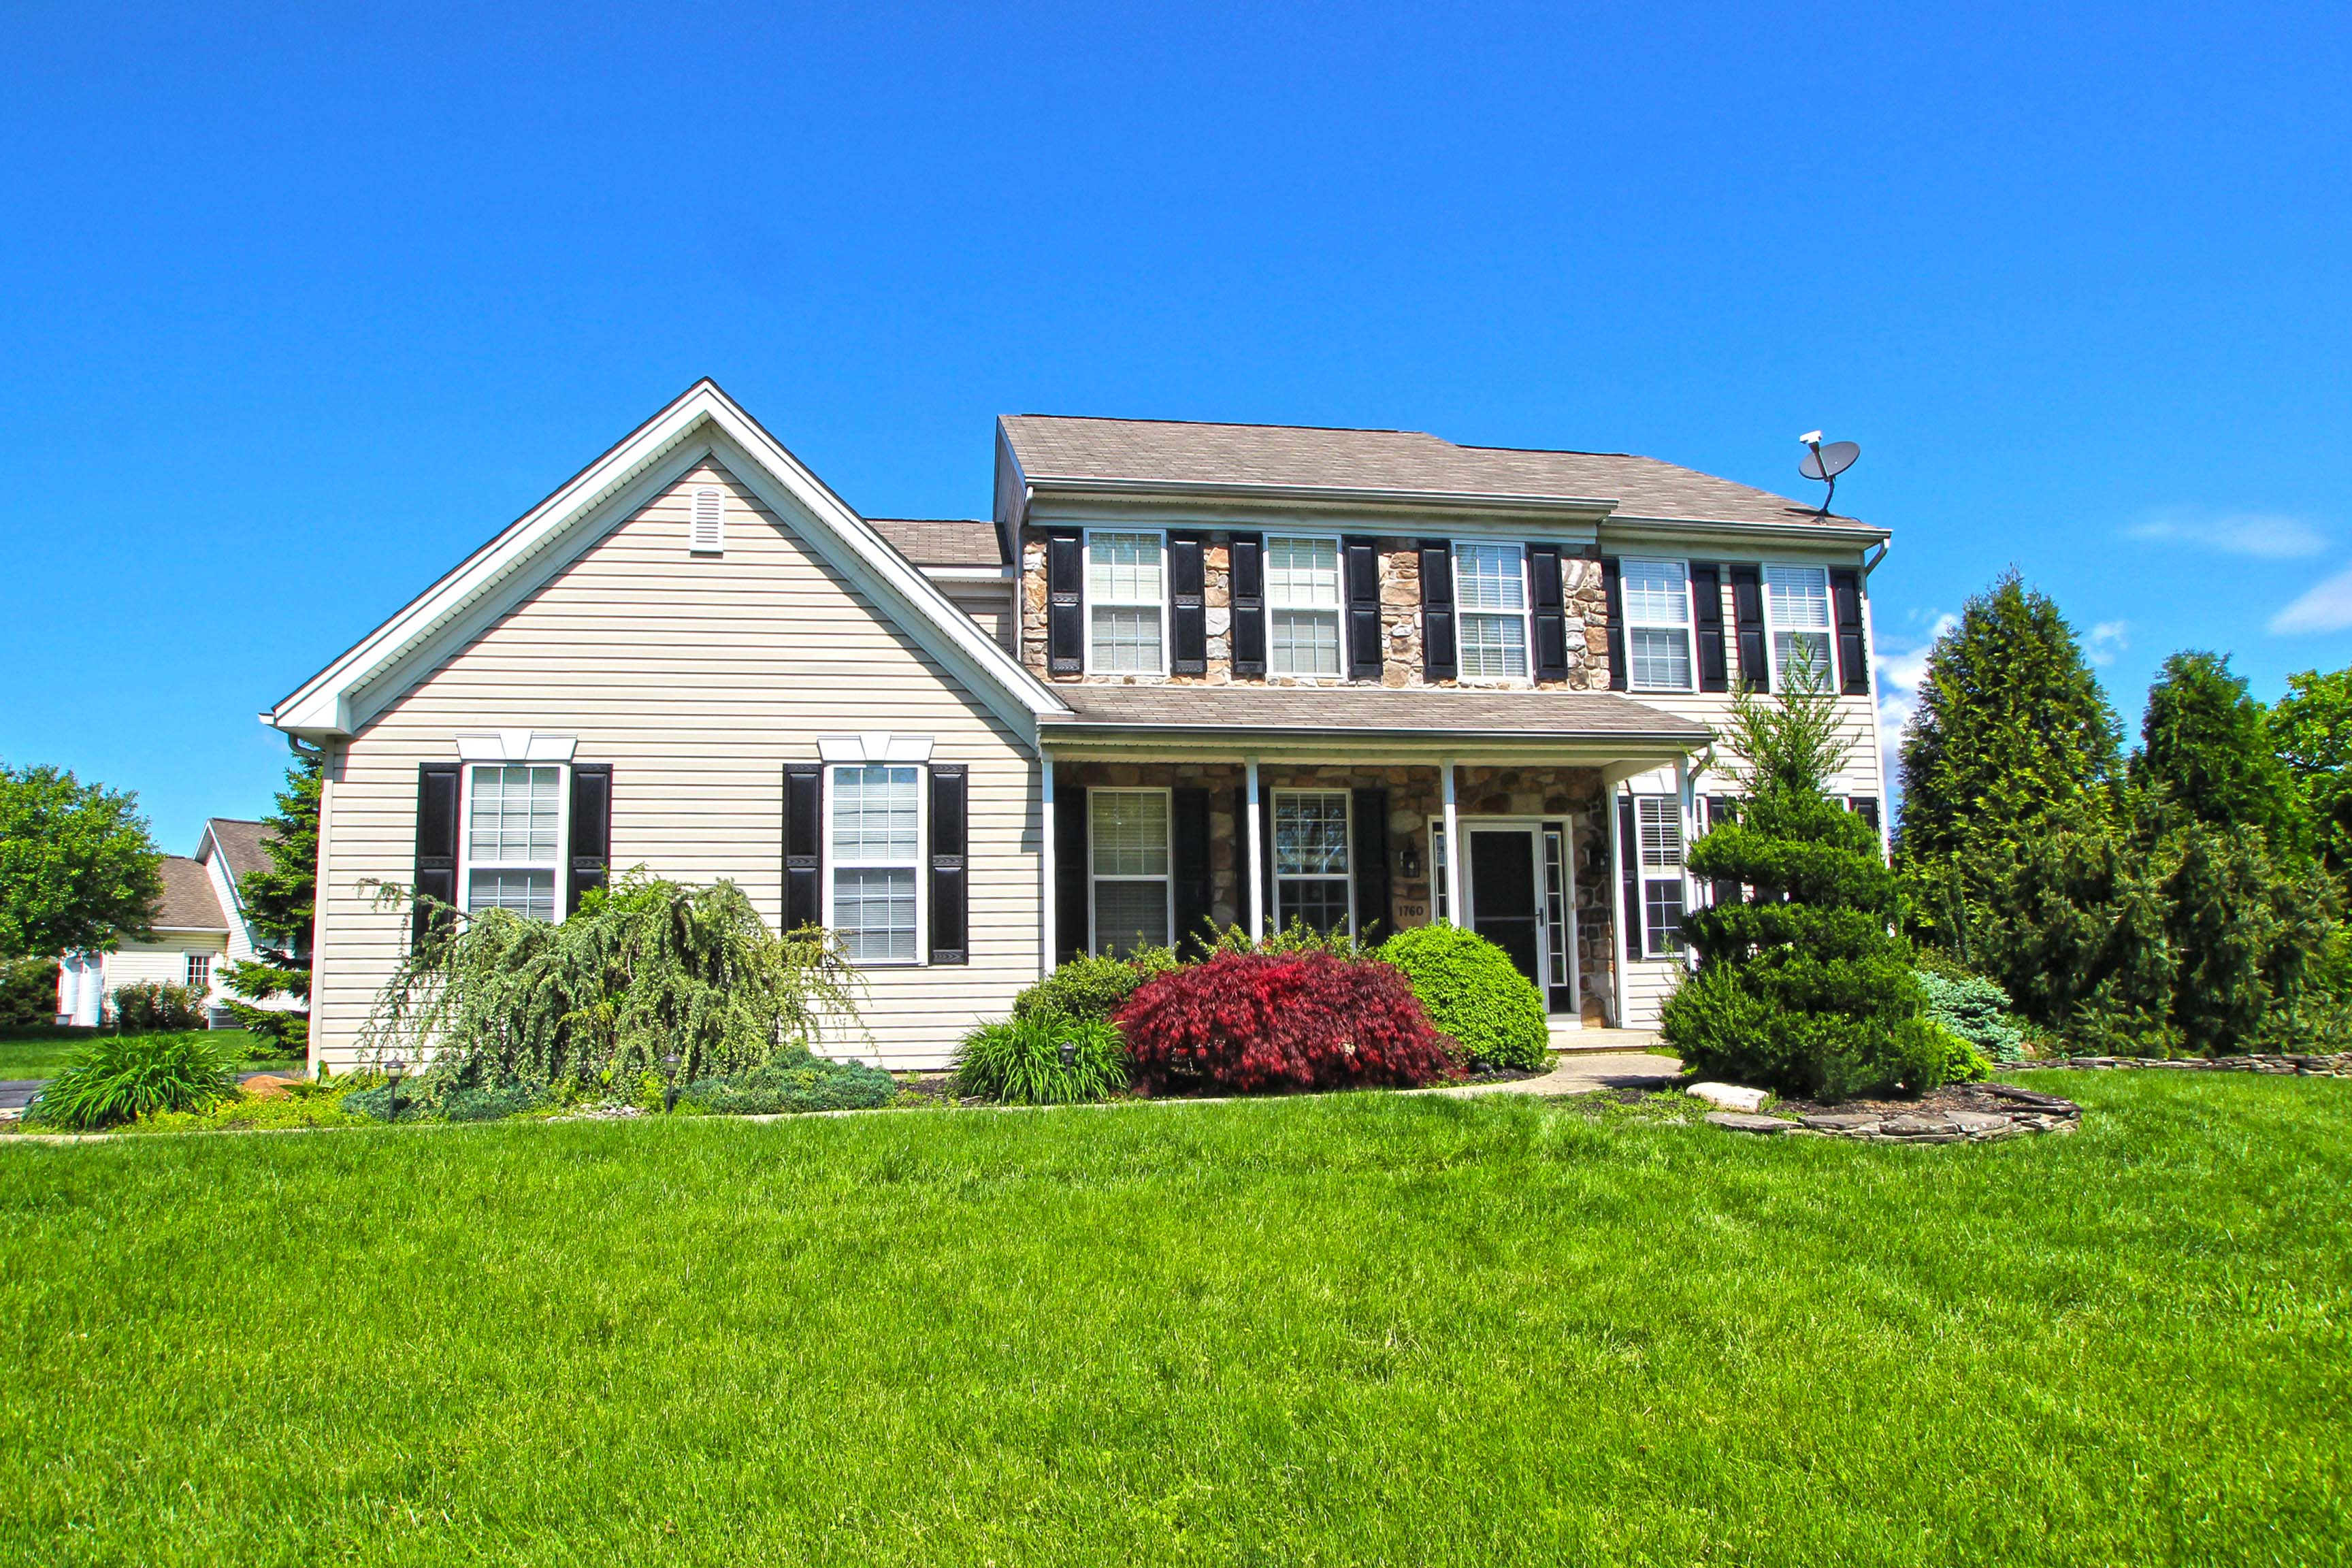 Forks Twp Home SOLD for FULL PRICE!